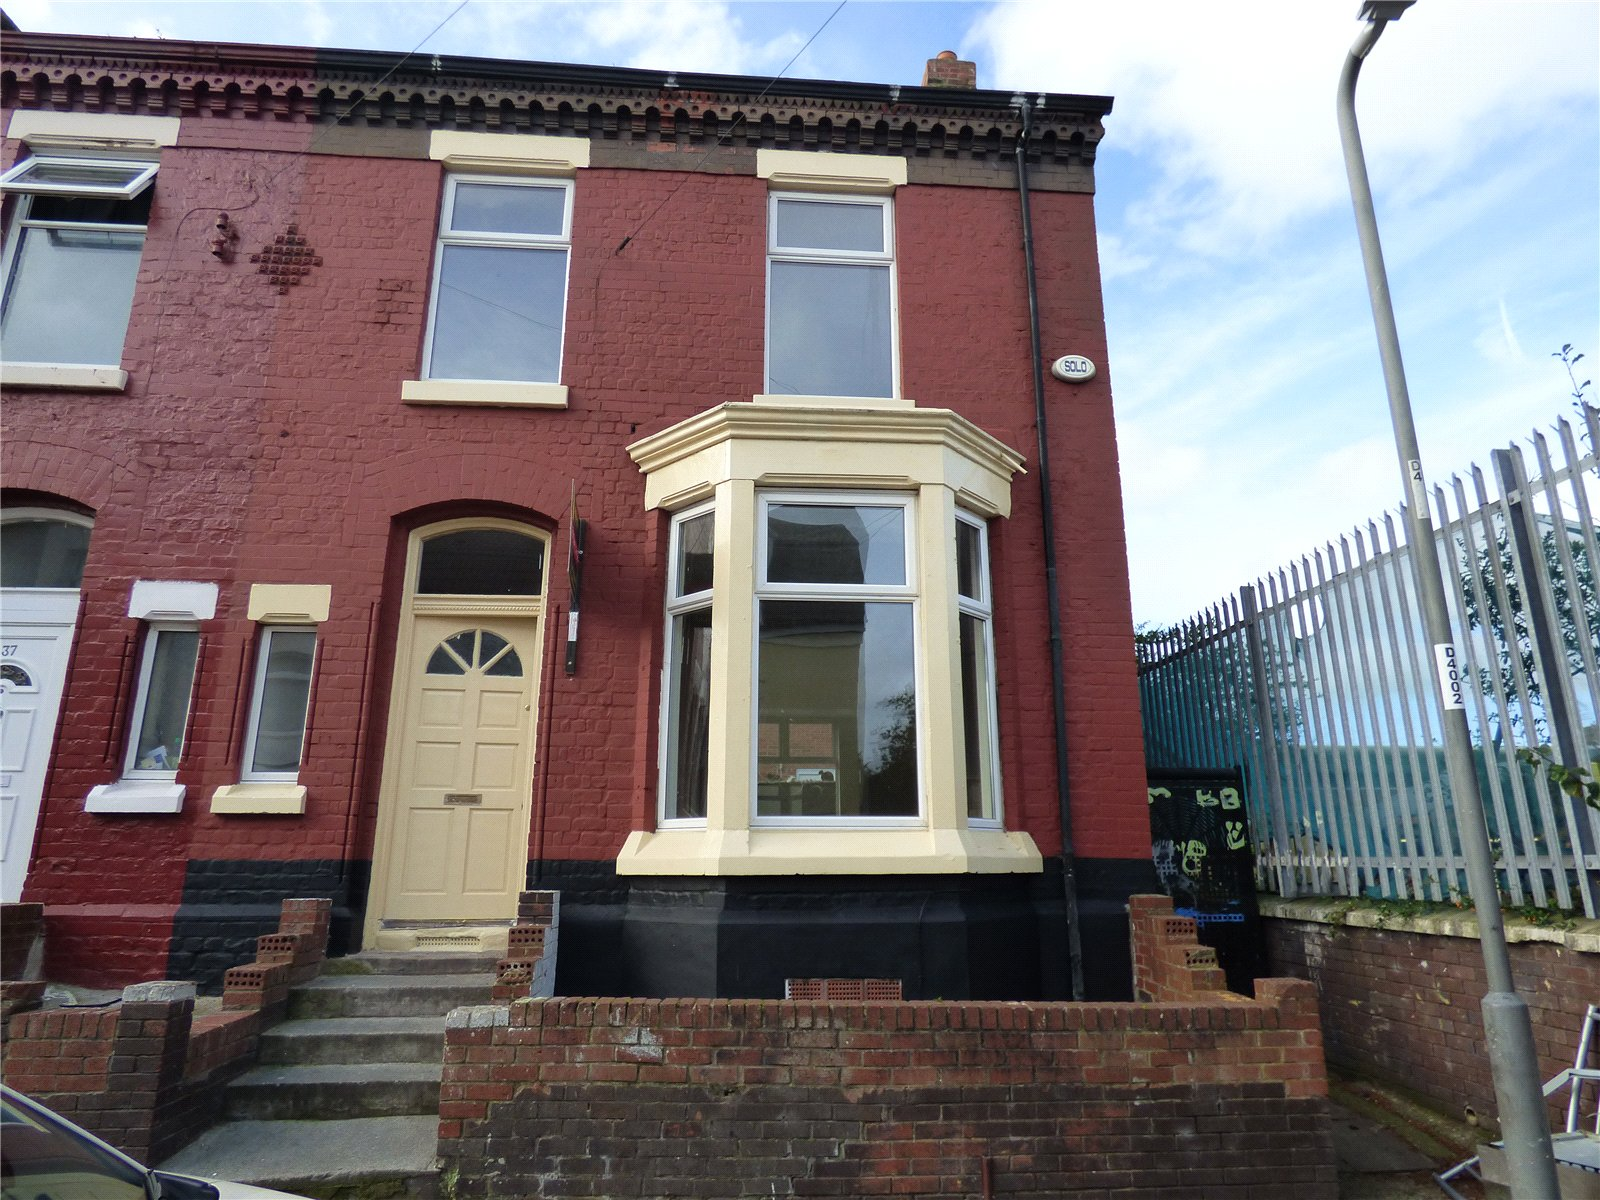 3 Bedrooms End Of Terrace House for sale in St. Andrew Road, Liverpool, Merseyside, L4